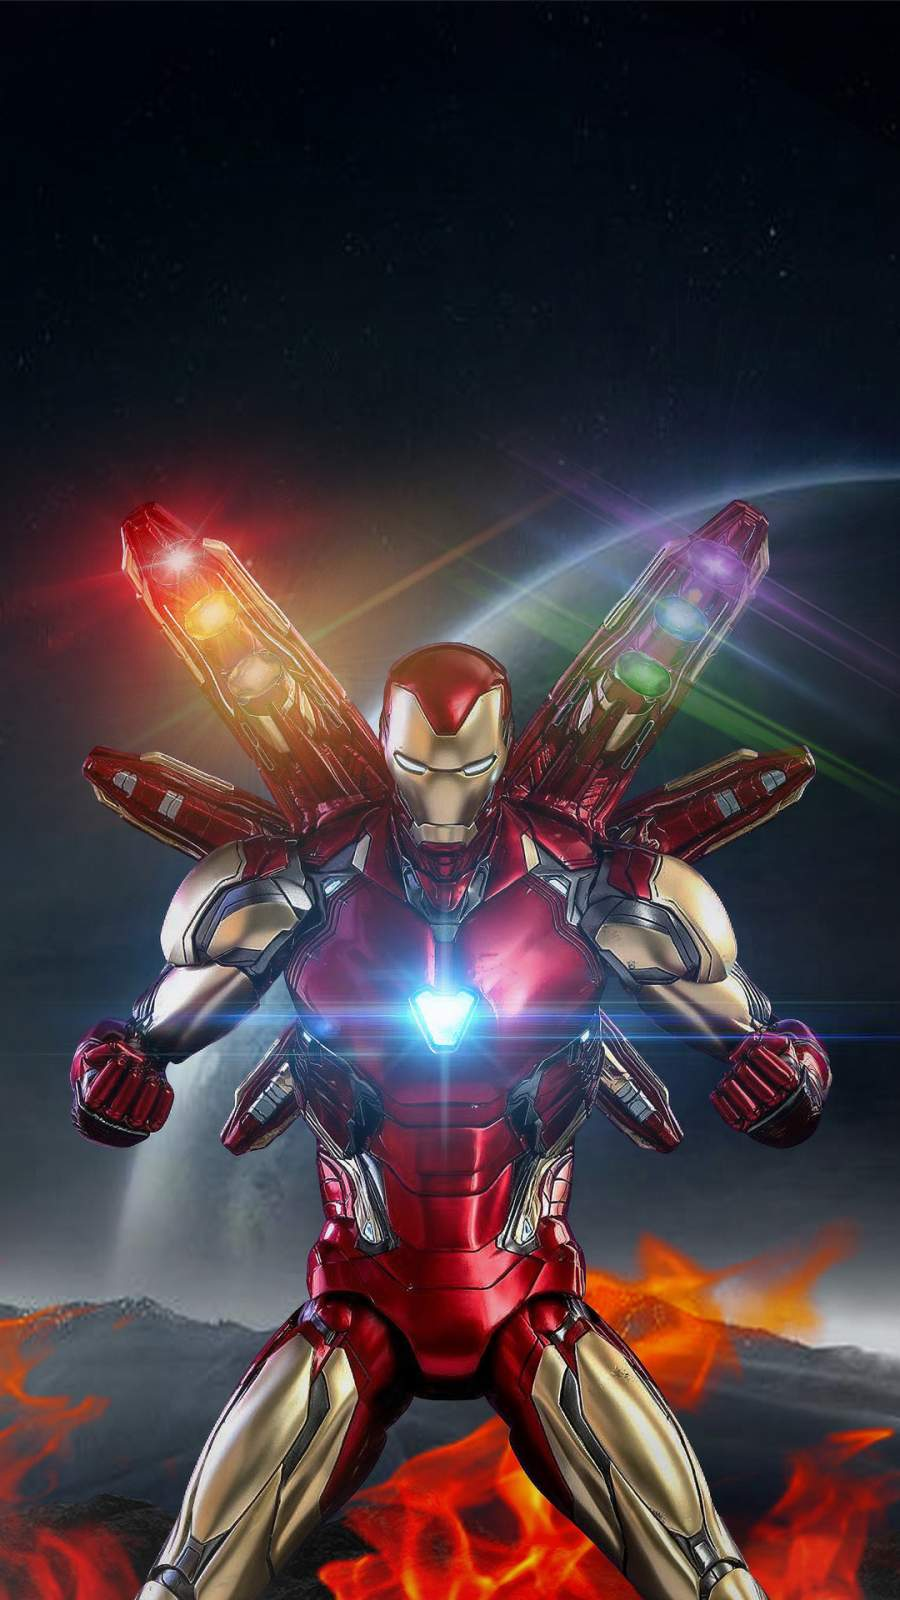 Cute Iron Man Wallpapers Iron Man Infinity Armor Iphone Wallpaper Iphone Wallpapers